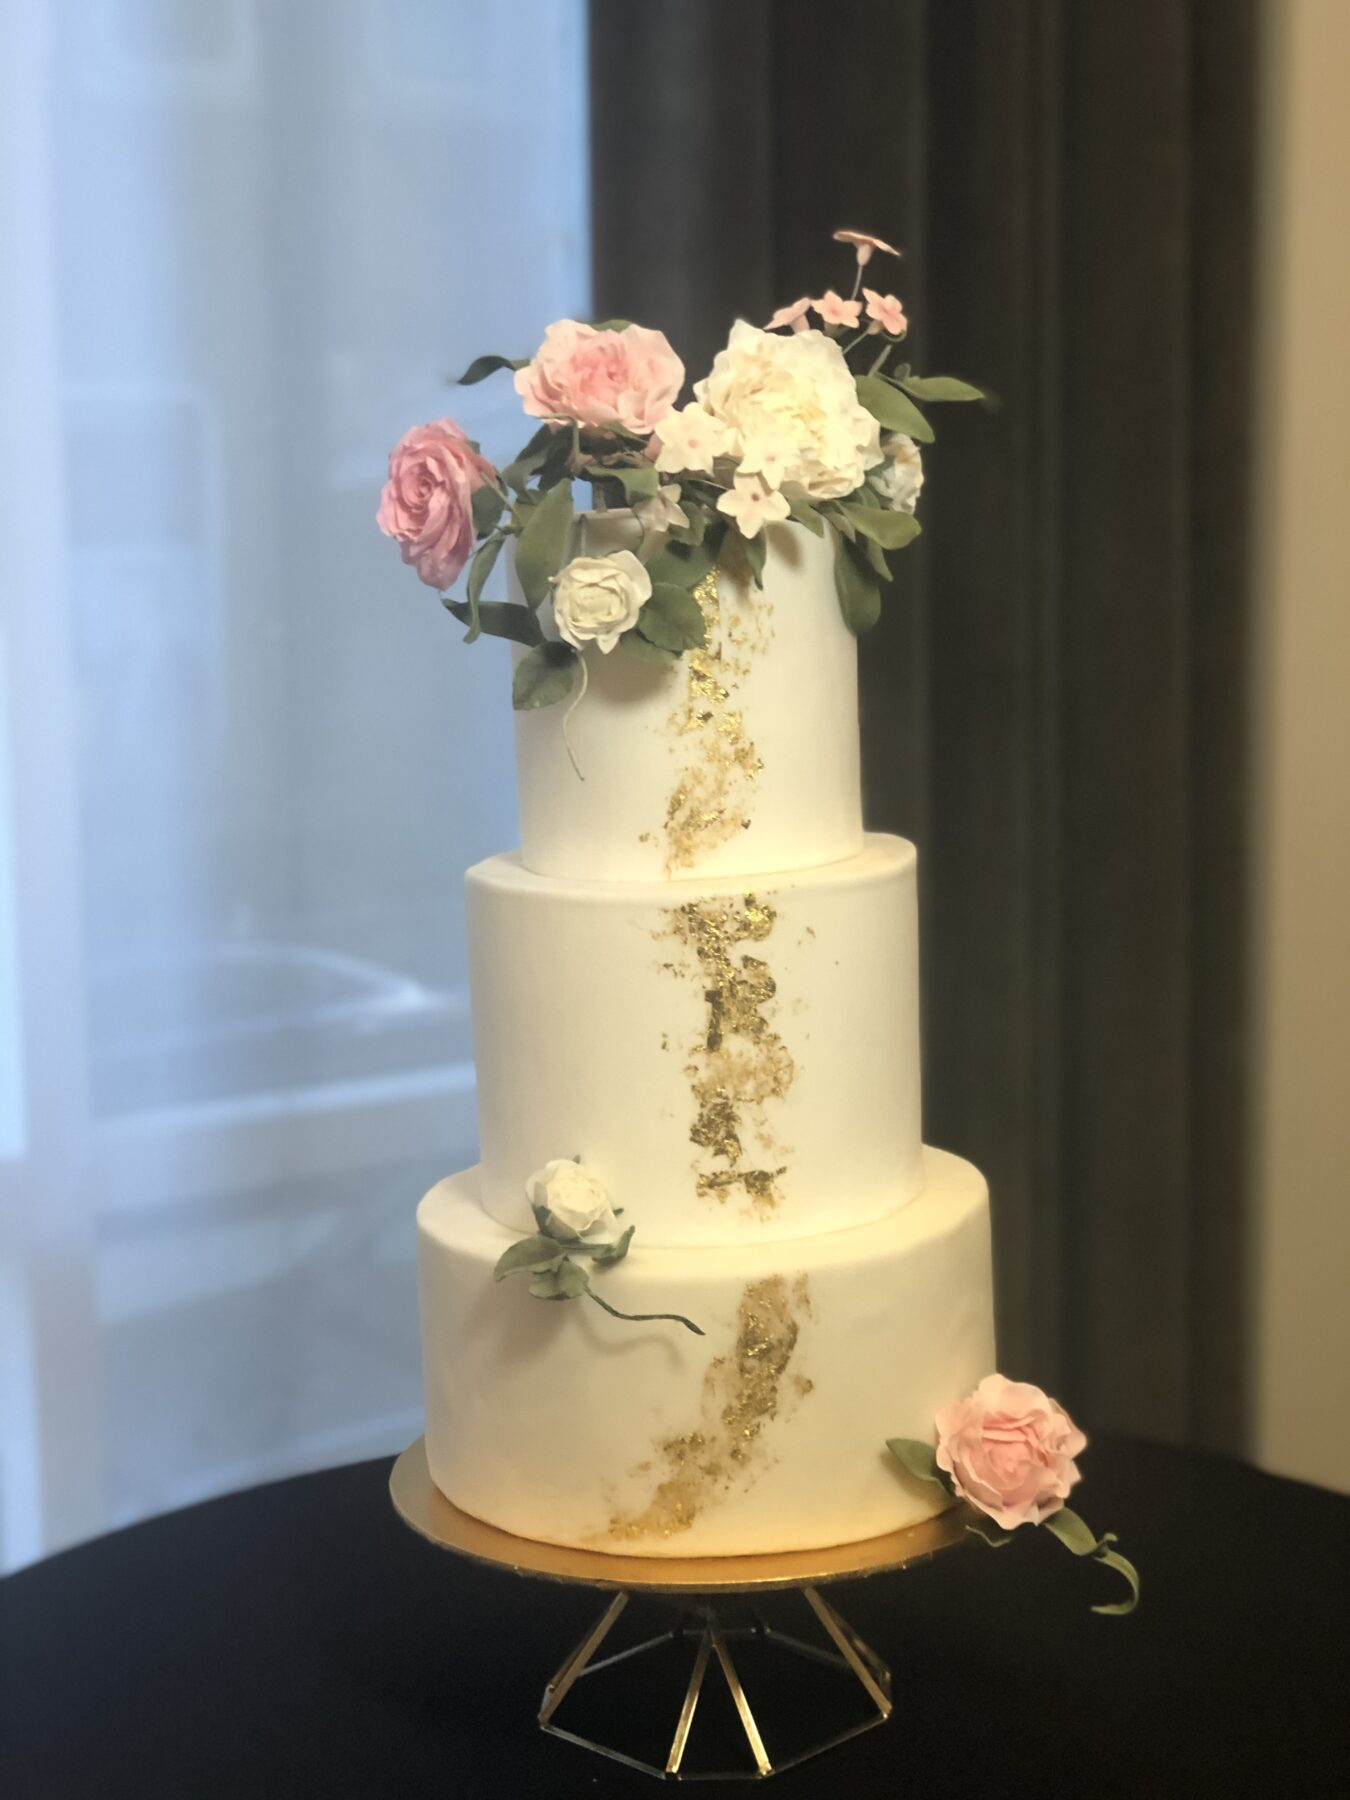 Elegant wedding cake white fondant with gold leaf running down the front, fondant flowers,